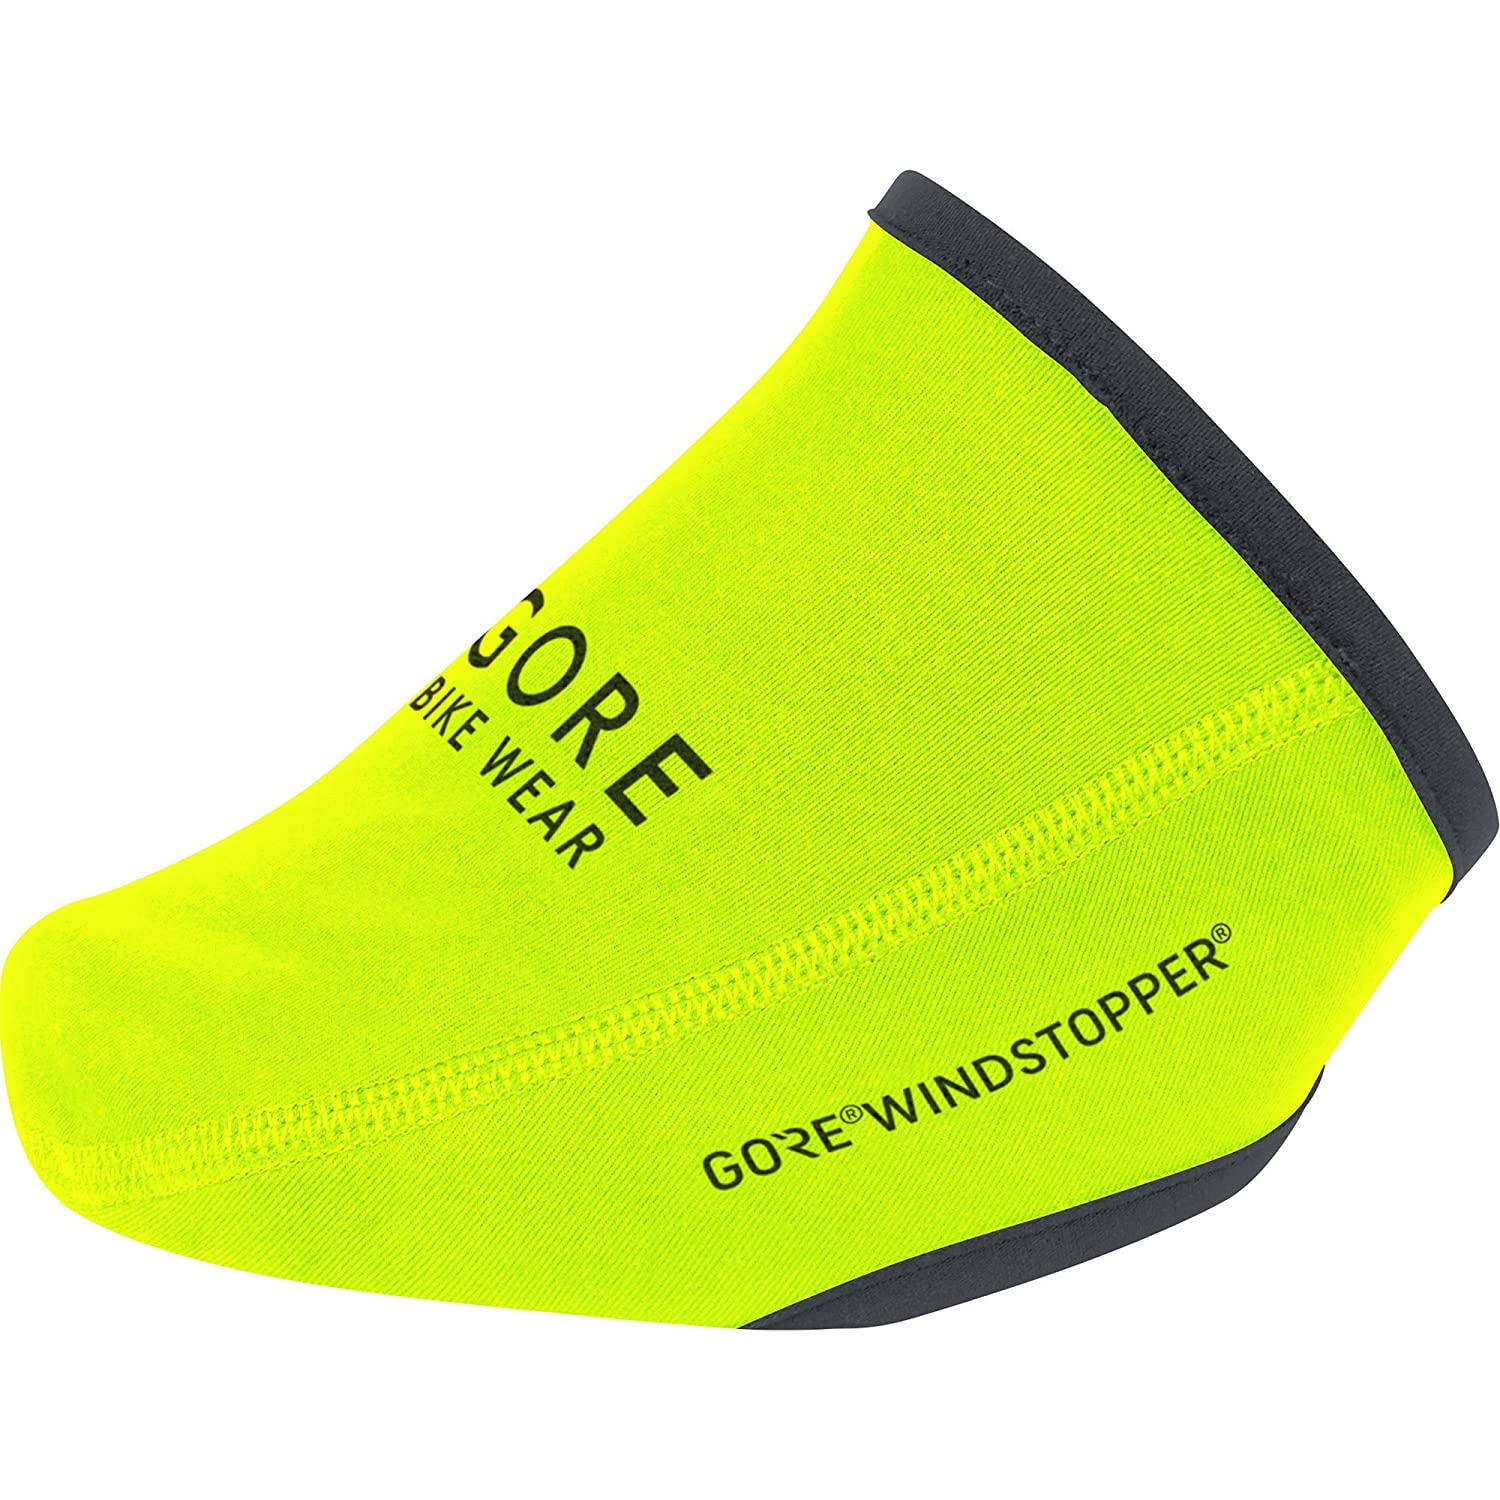 Gore Wear, Punteras Cortavientos, Gore C3 Gore Windstopper Toe Cover, 100226: Amazon.es: Zapatos y complementos